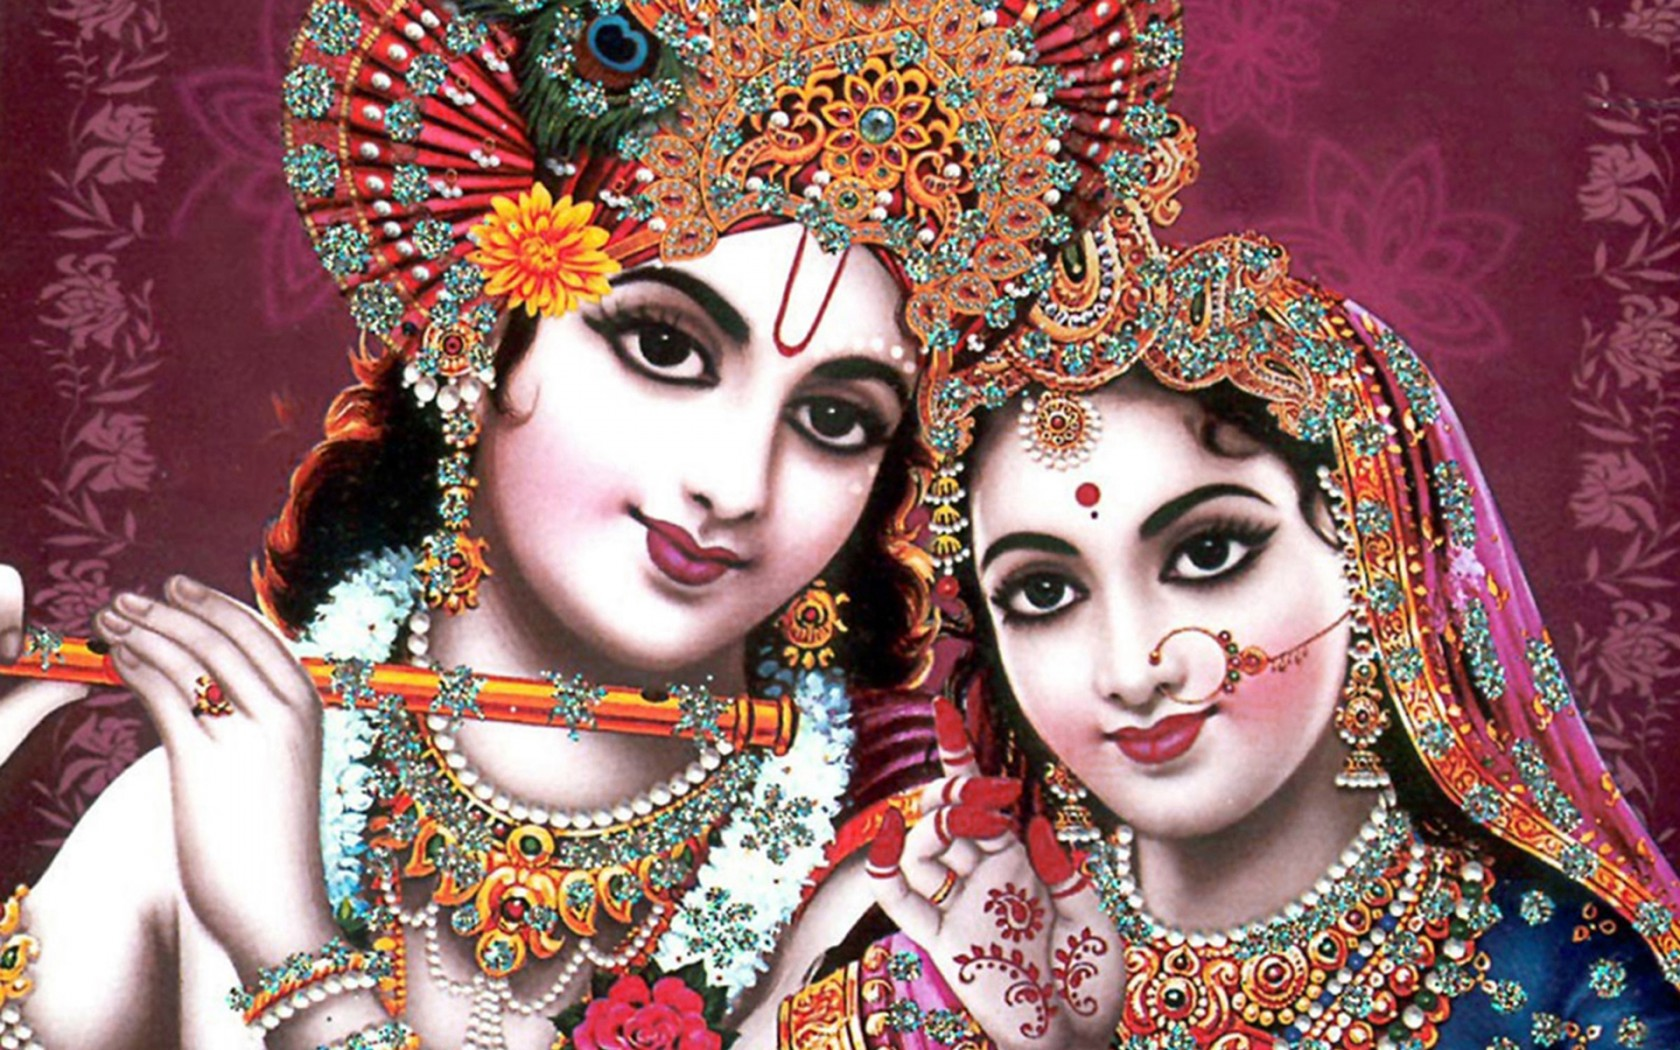 Krishna And Radha 3d Wallpaper Indian God Radha Krishna Wallpapers Hd Wallpapers Id